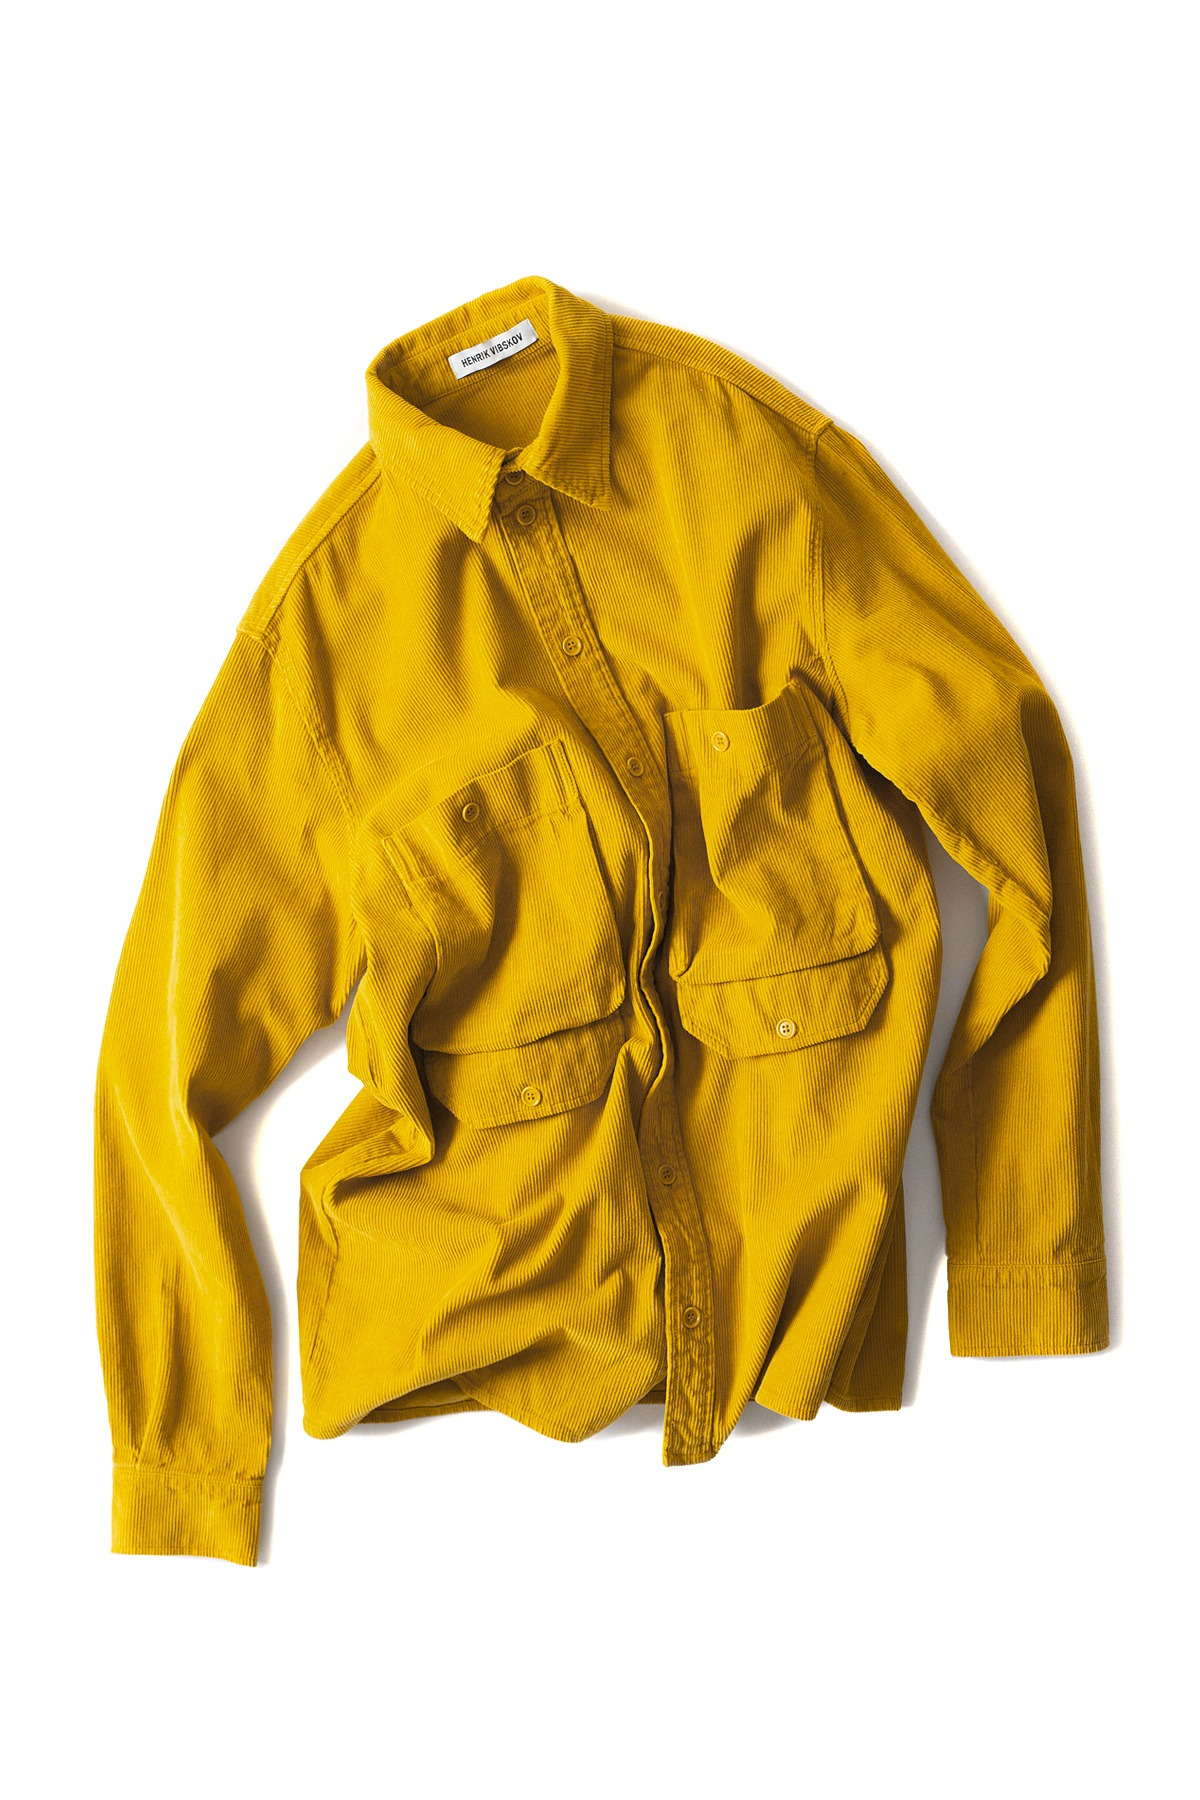 HENRIK VIBSKOV : Upper Shirt Cord (Yellow)